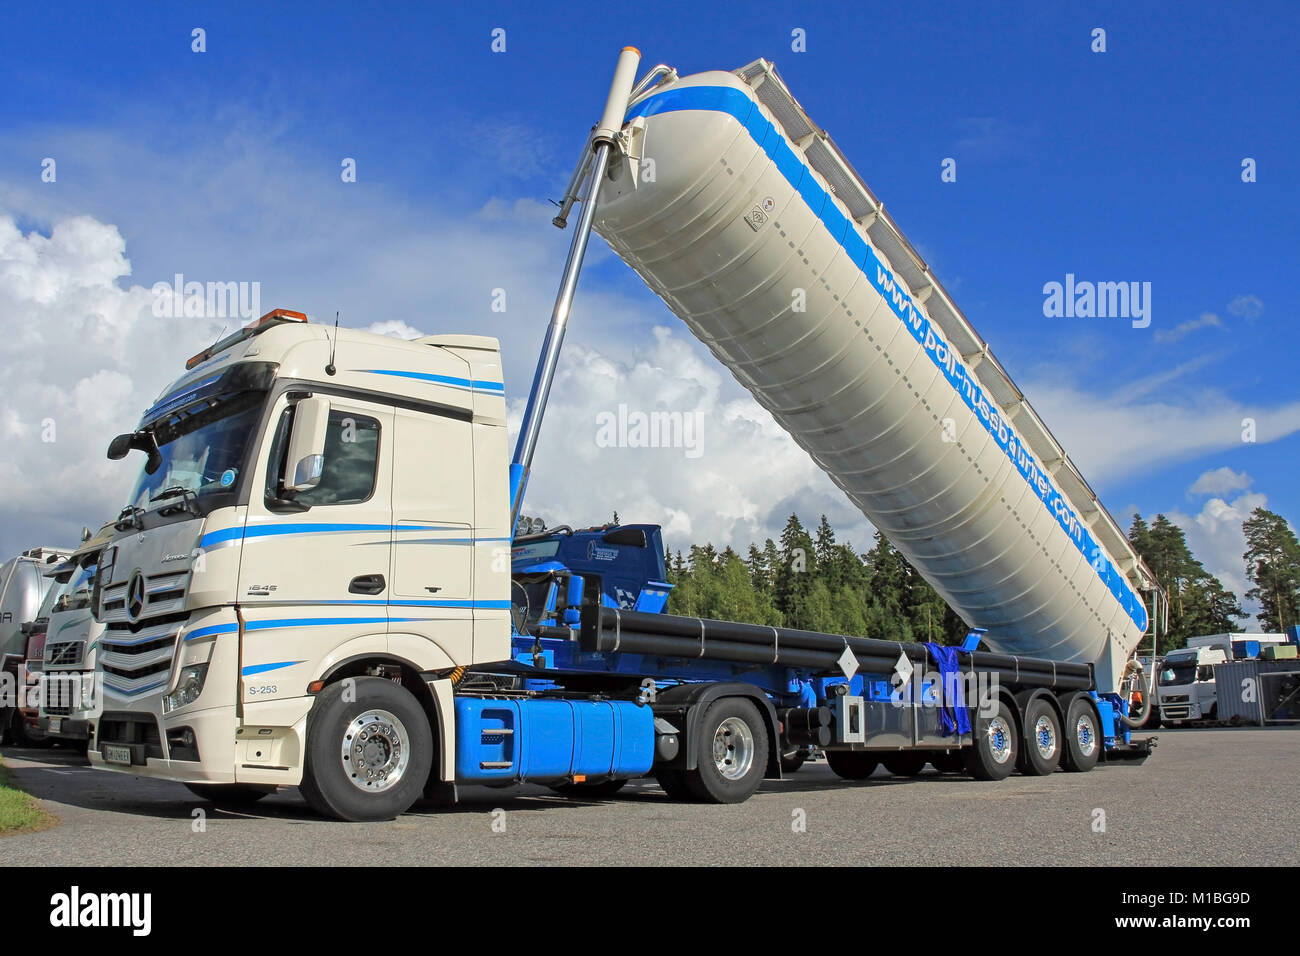 Chassis Cab Stock Photos & Chassis Cab Stock Images - Alamy